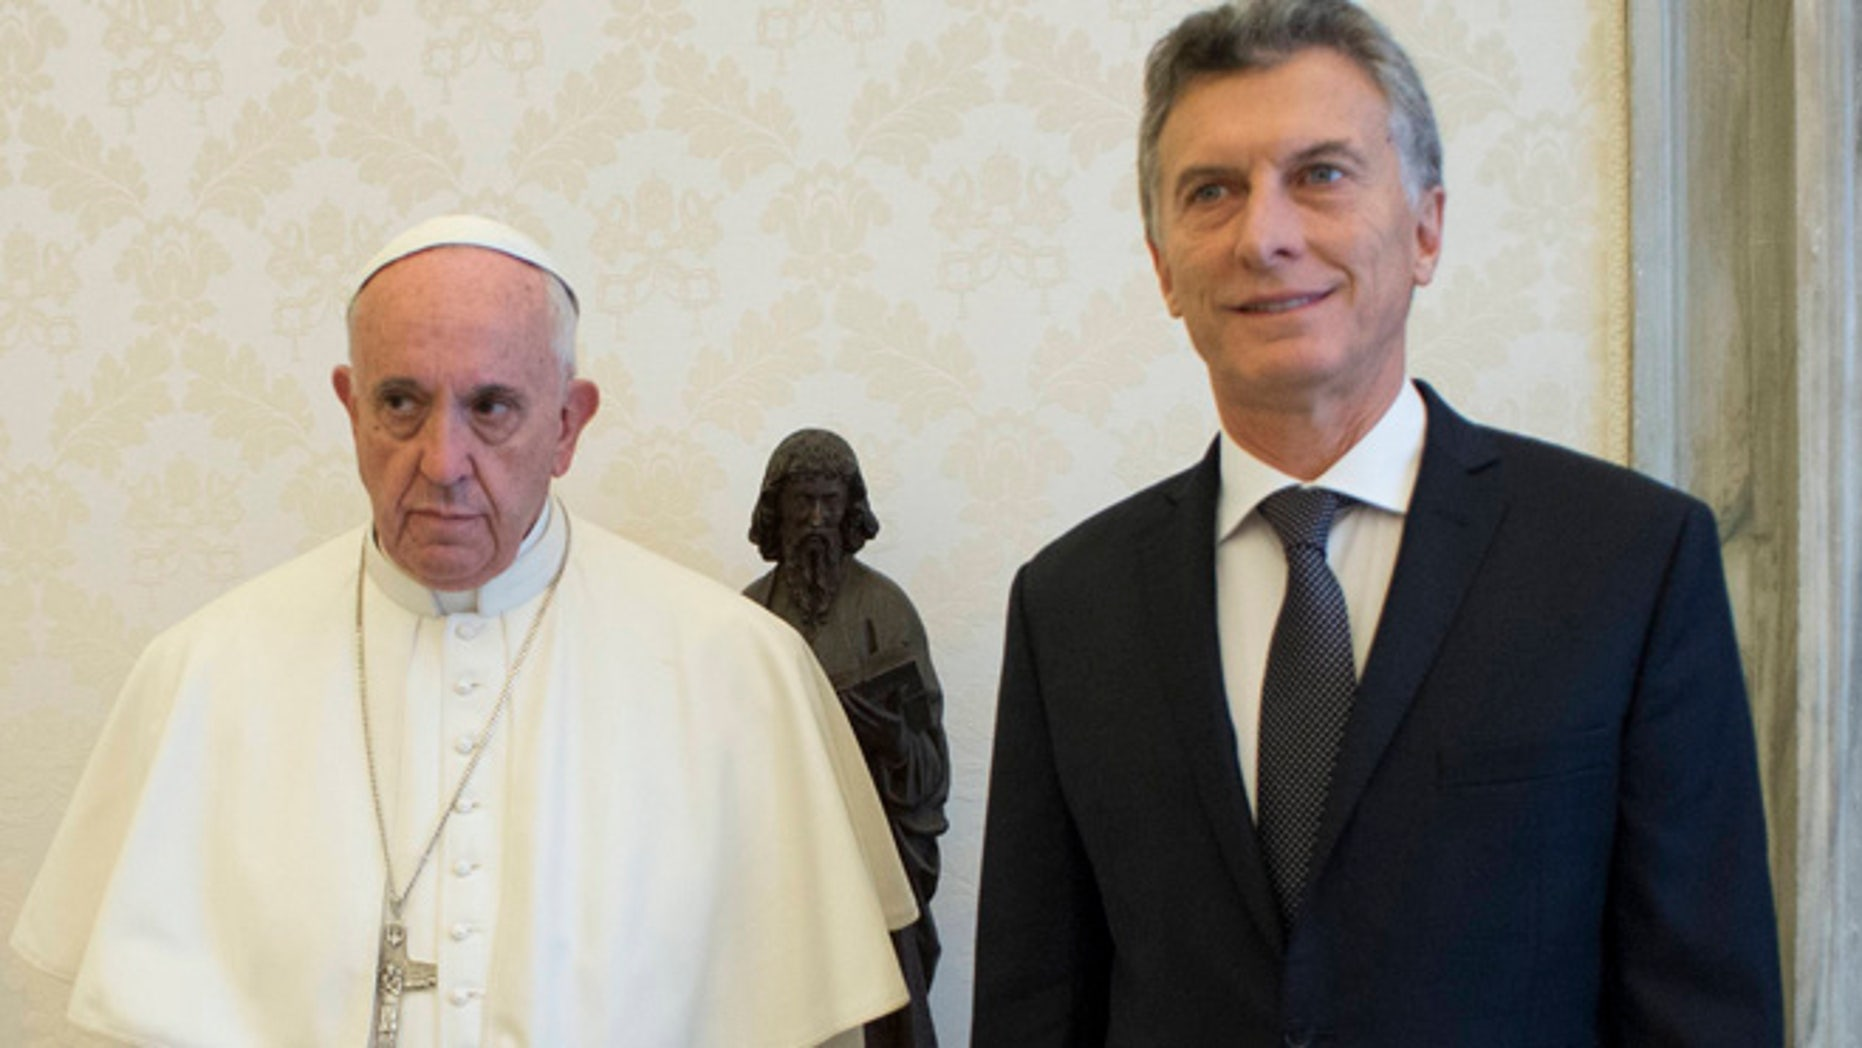 Pope Francis and Argentina's president Mauricio Macri pose for a picture during a private audience at the Vatican, Saturday, Feb. 27, 2016 (L'Osservatore Romano/pool photo via AP)